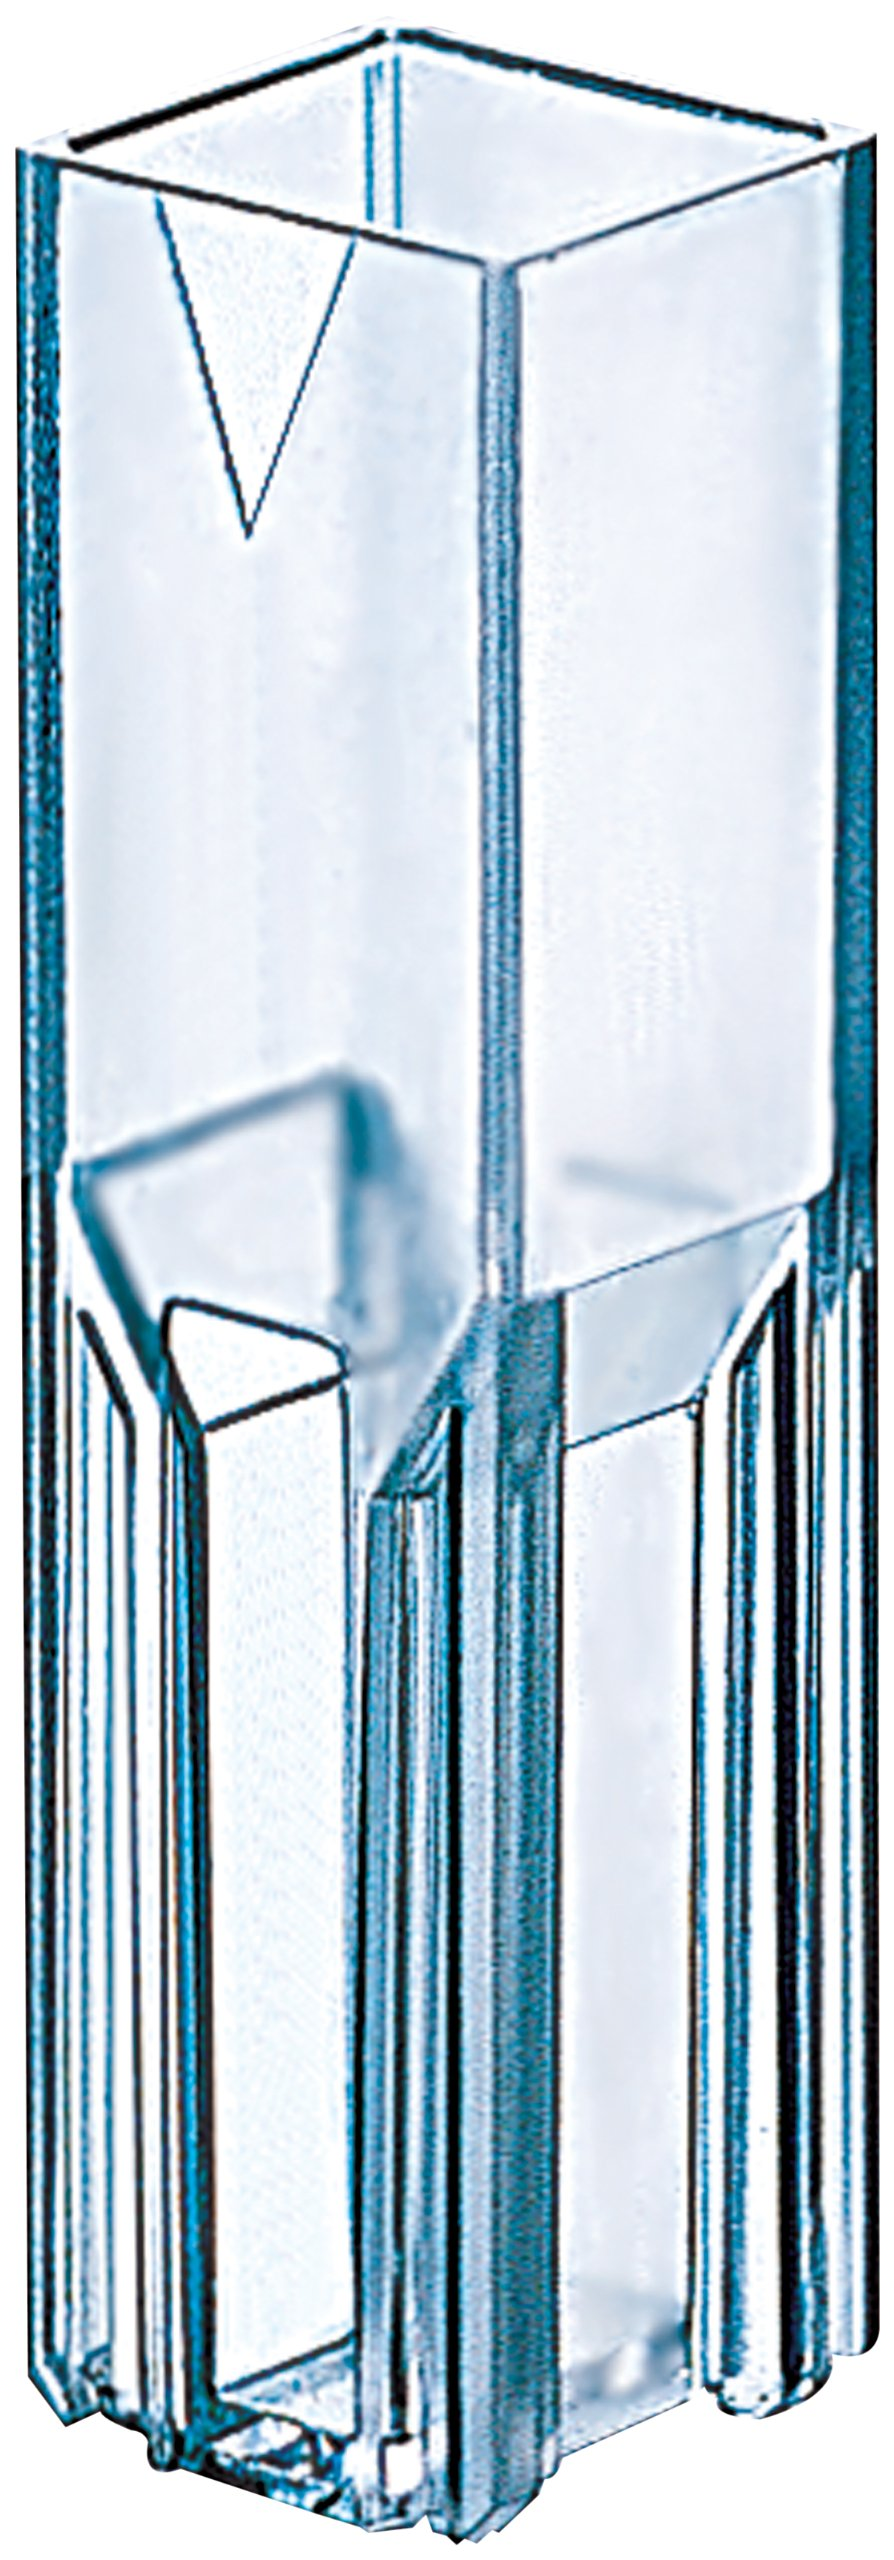 Thomas Methacrylate Cuvette Cell, 1.5mL Volume, 285 to 750nm Spectral Range (Case of 5 Packs, 100 per Pack)